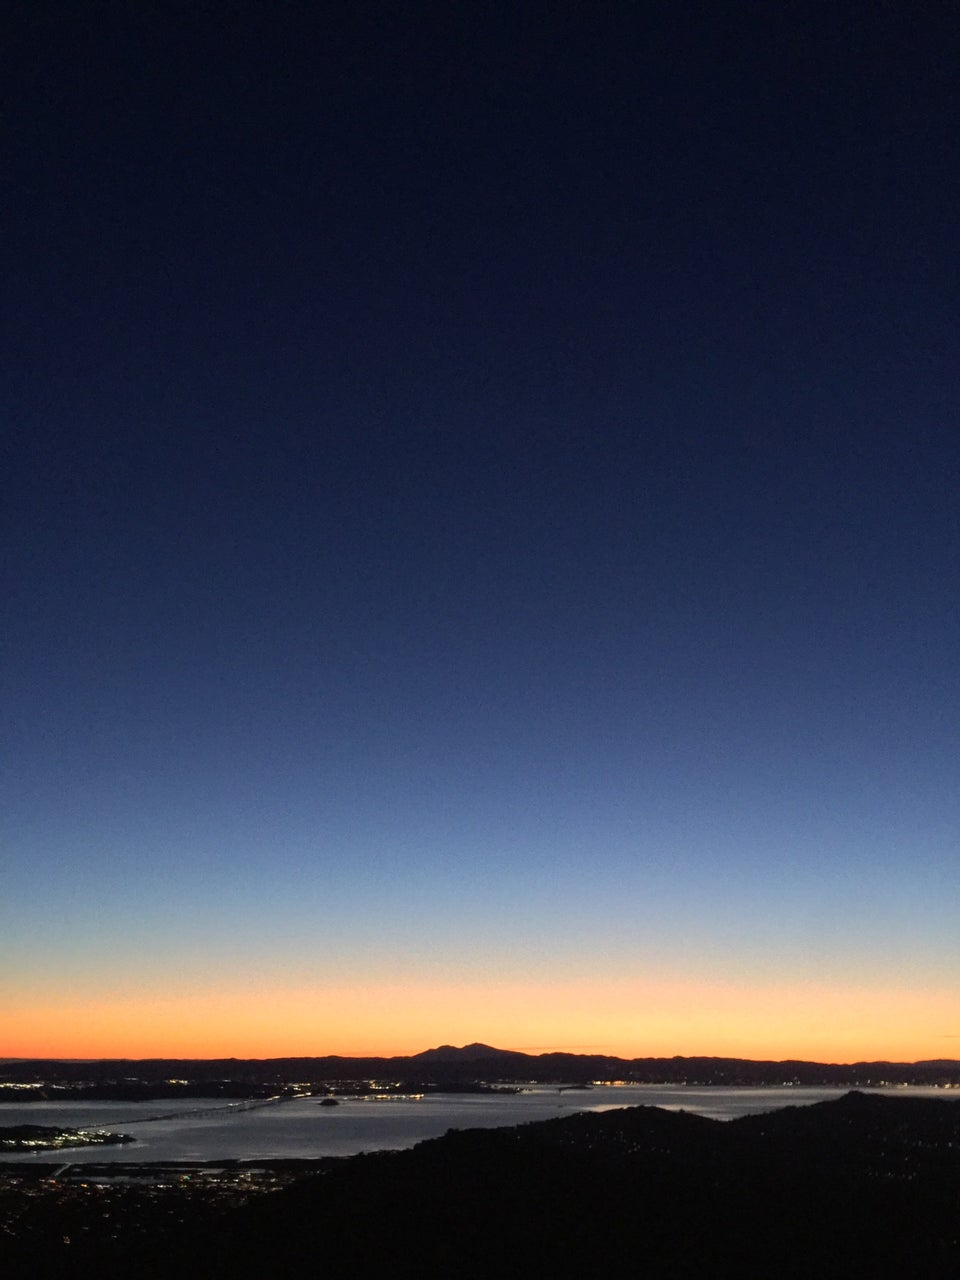 Dark blue to light blue gradient clear sky above a bright orange pre-dawn horizon backlighting the double peaked Mount Diablo and East Bay hills, city lights visible on both sides of the bay, a tiny Richmond bridge on the lower left, dark hills in the lower foreground.